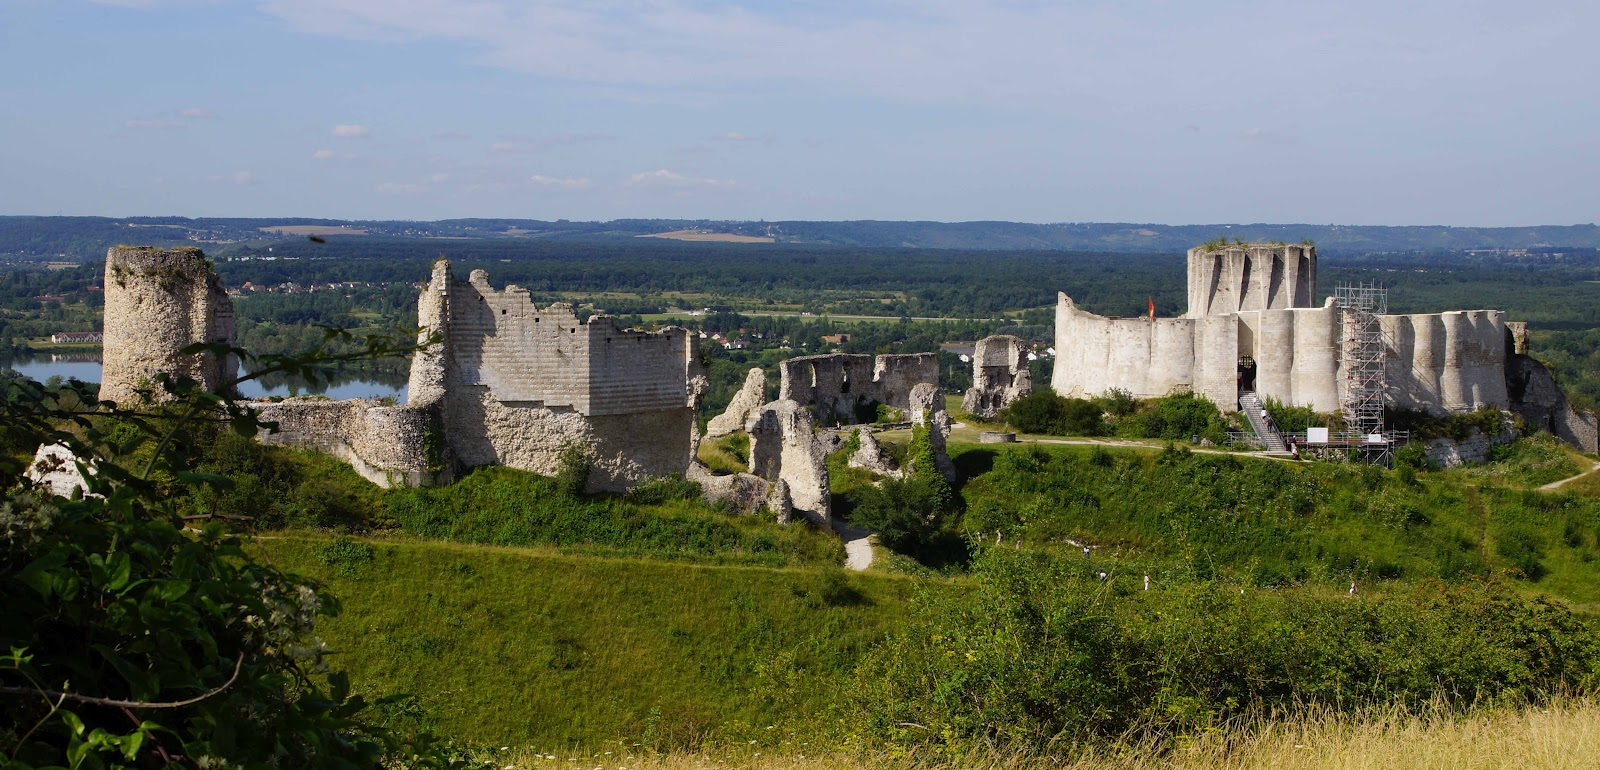 Gaillard France  city images : Andelys, Normandy France Chateau Gaillard, Richard the Lionheart ...